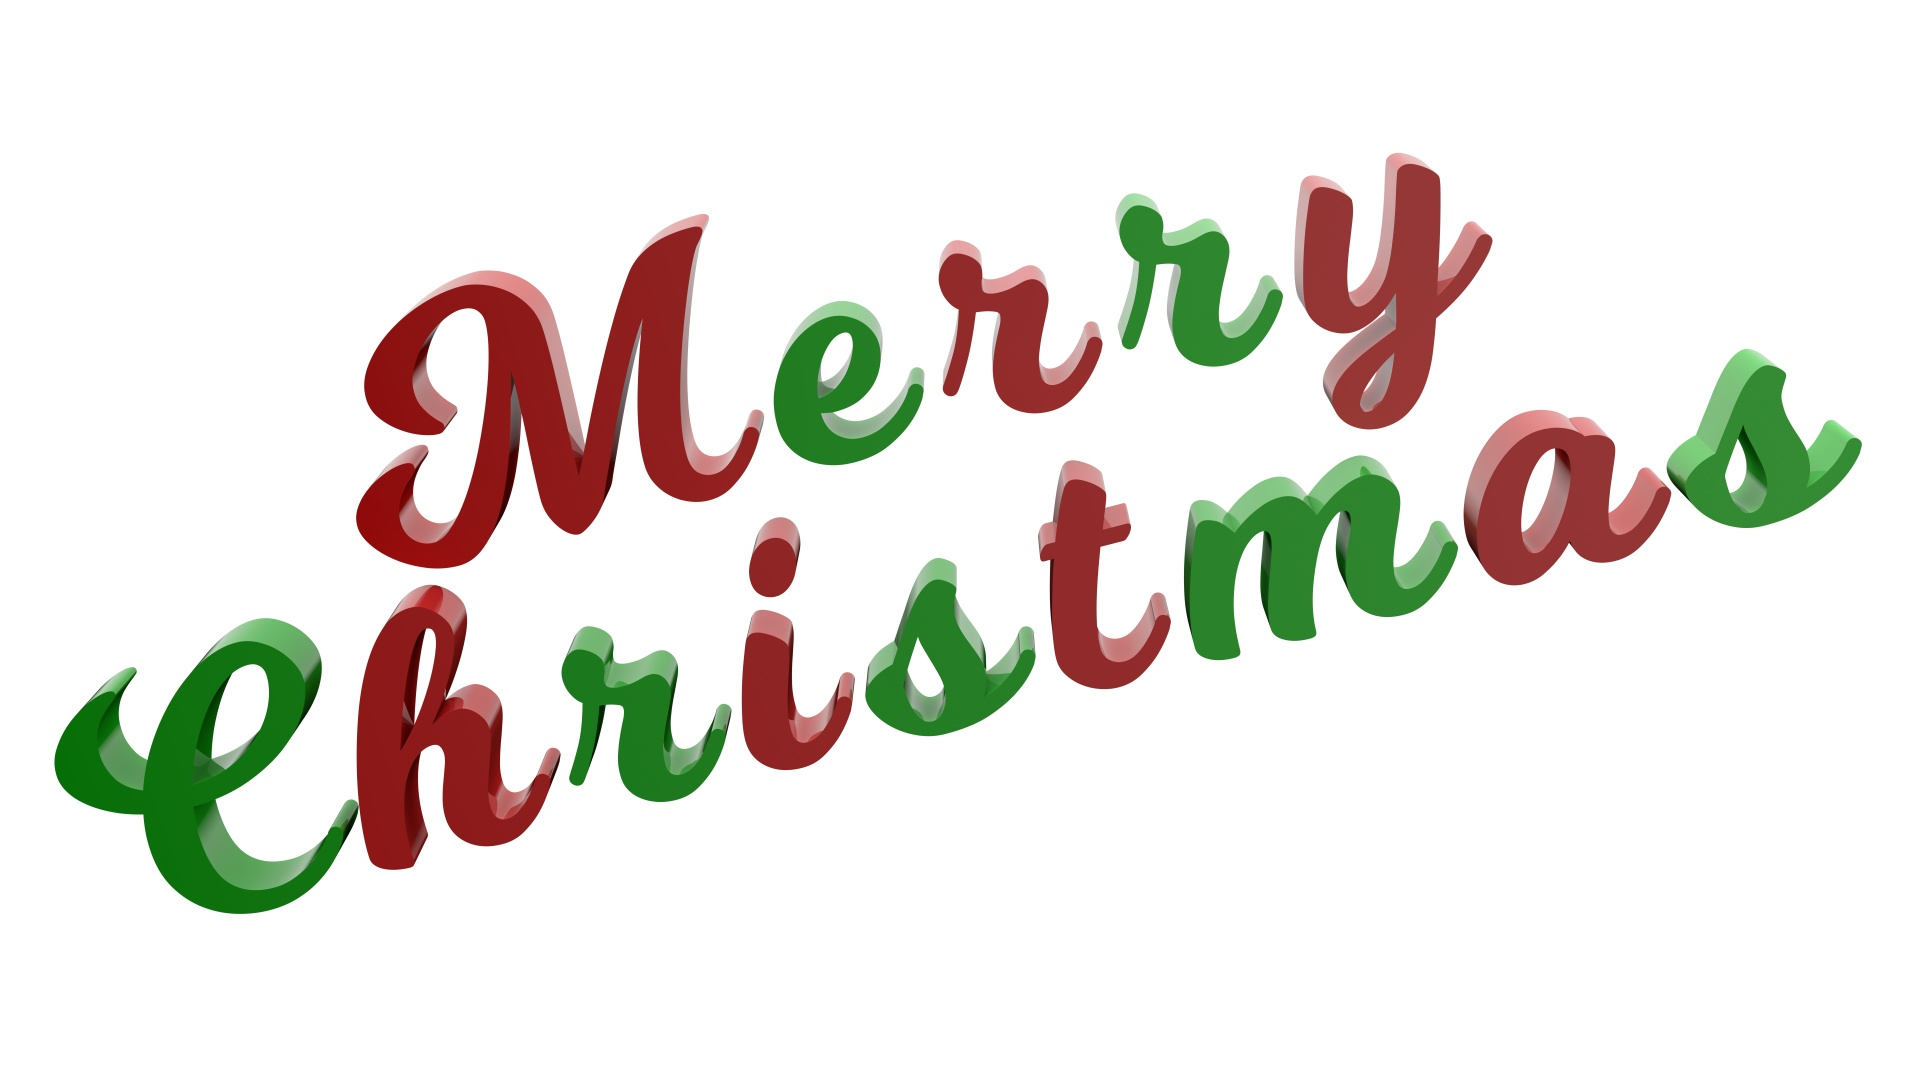 merry-christmas-red-green-text | Dr. George Hall Public School